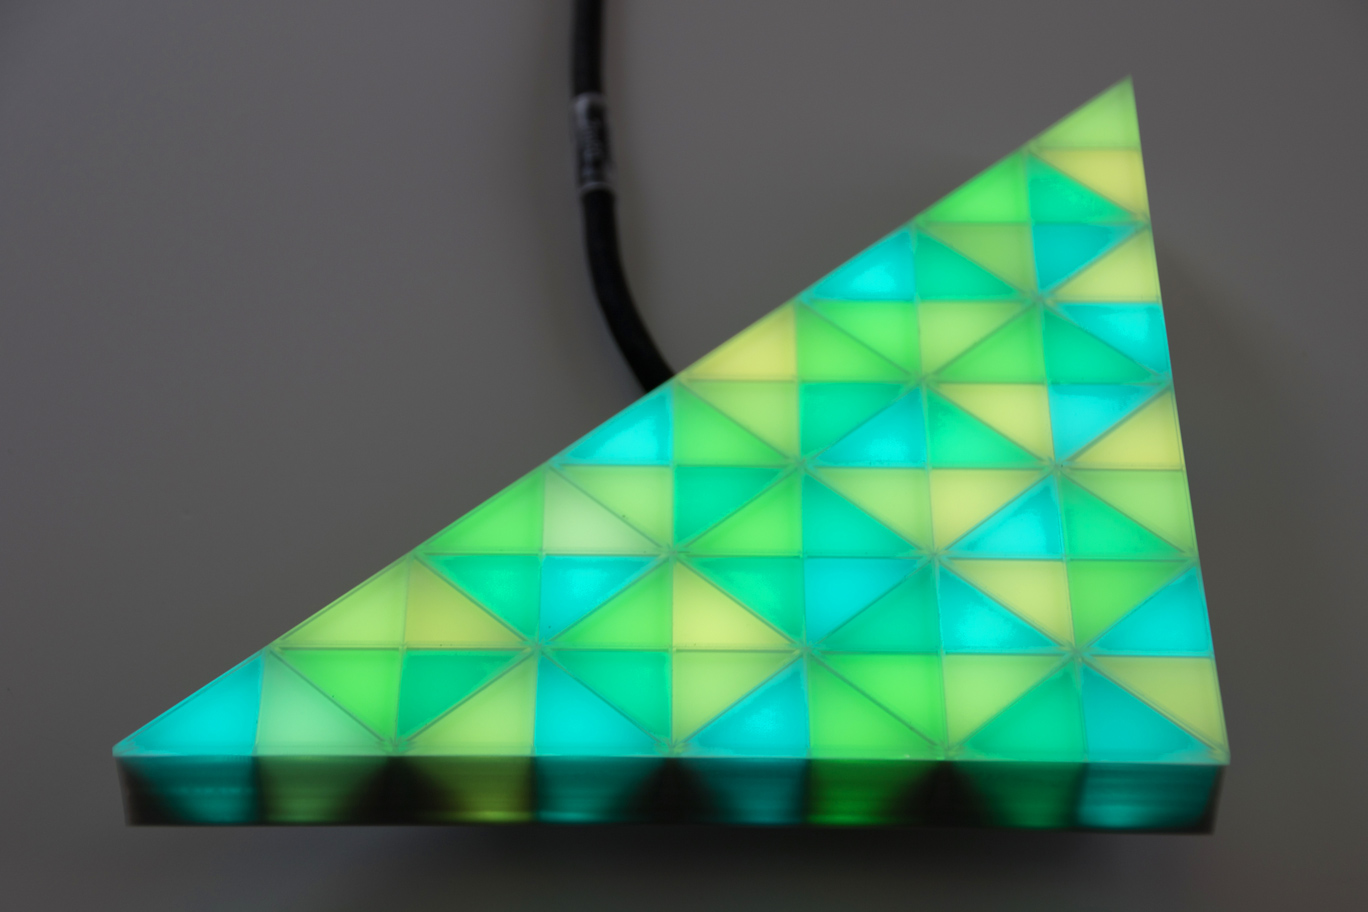 fully video capable, green glowing LED module in a triangular shape